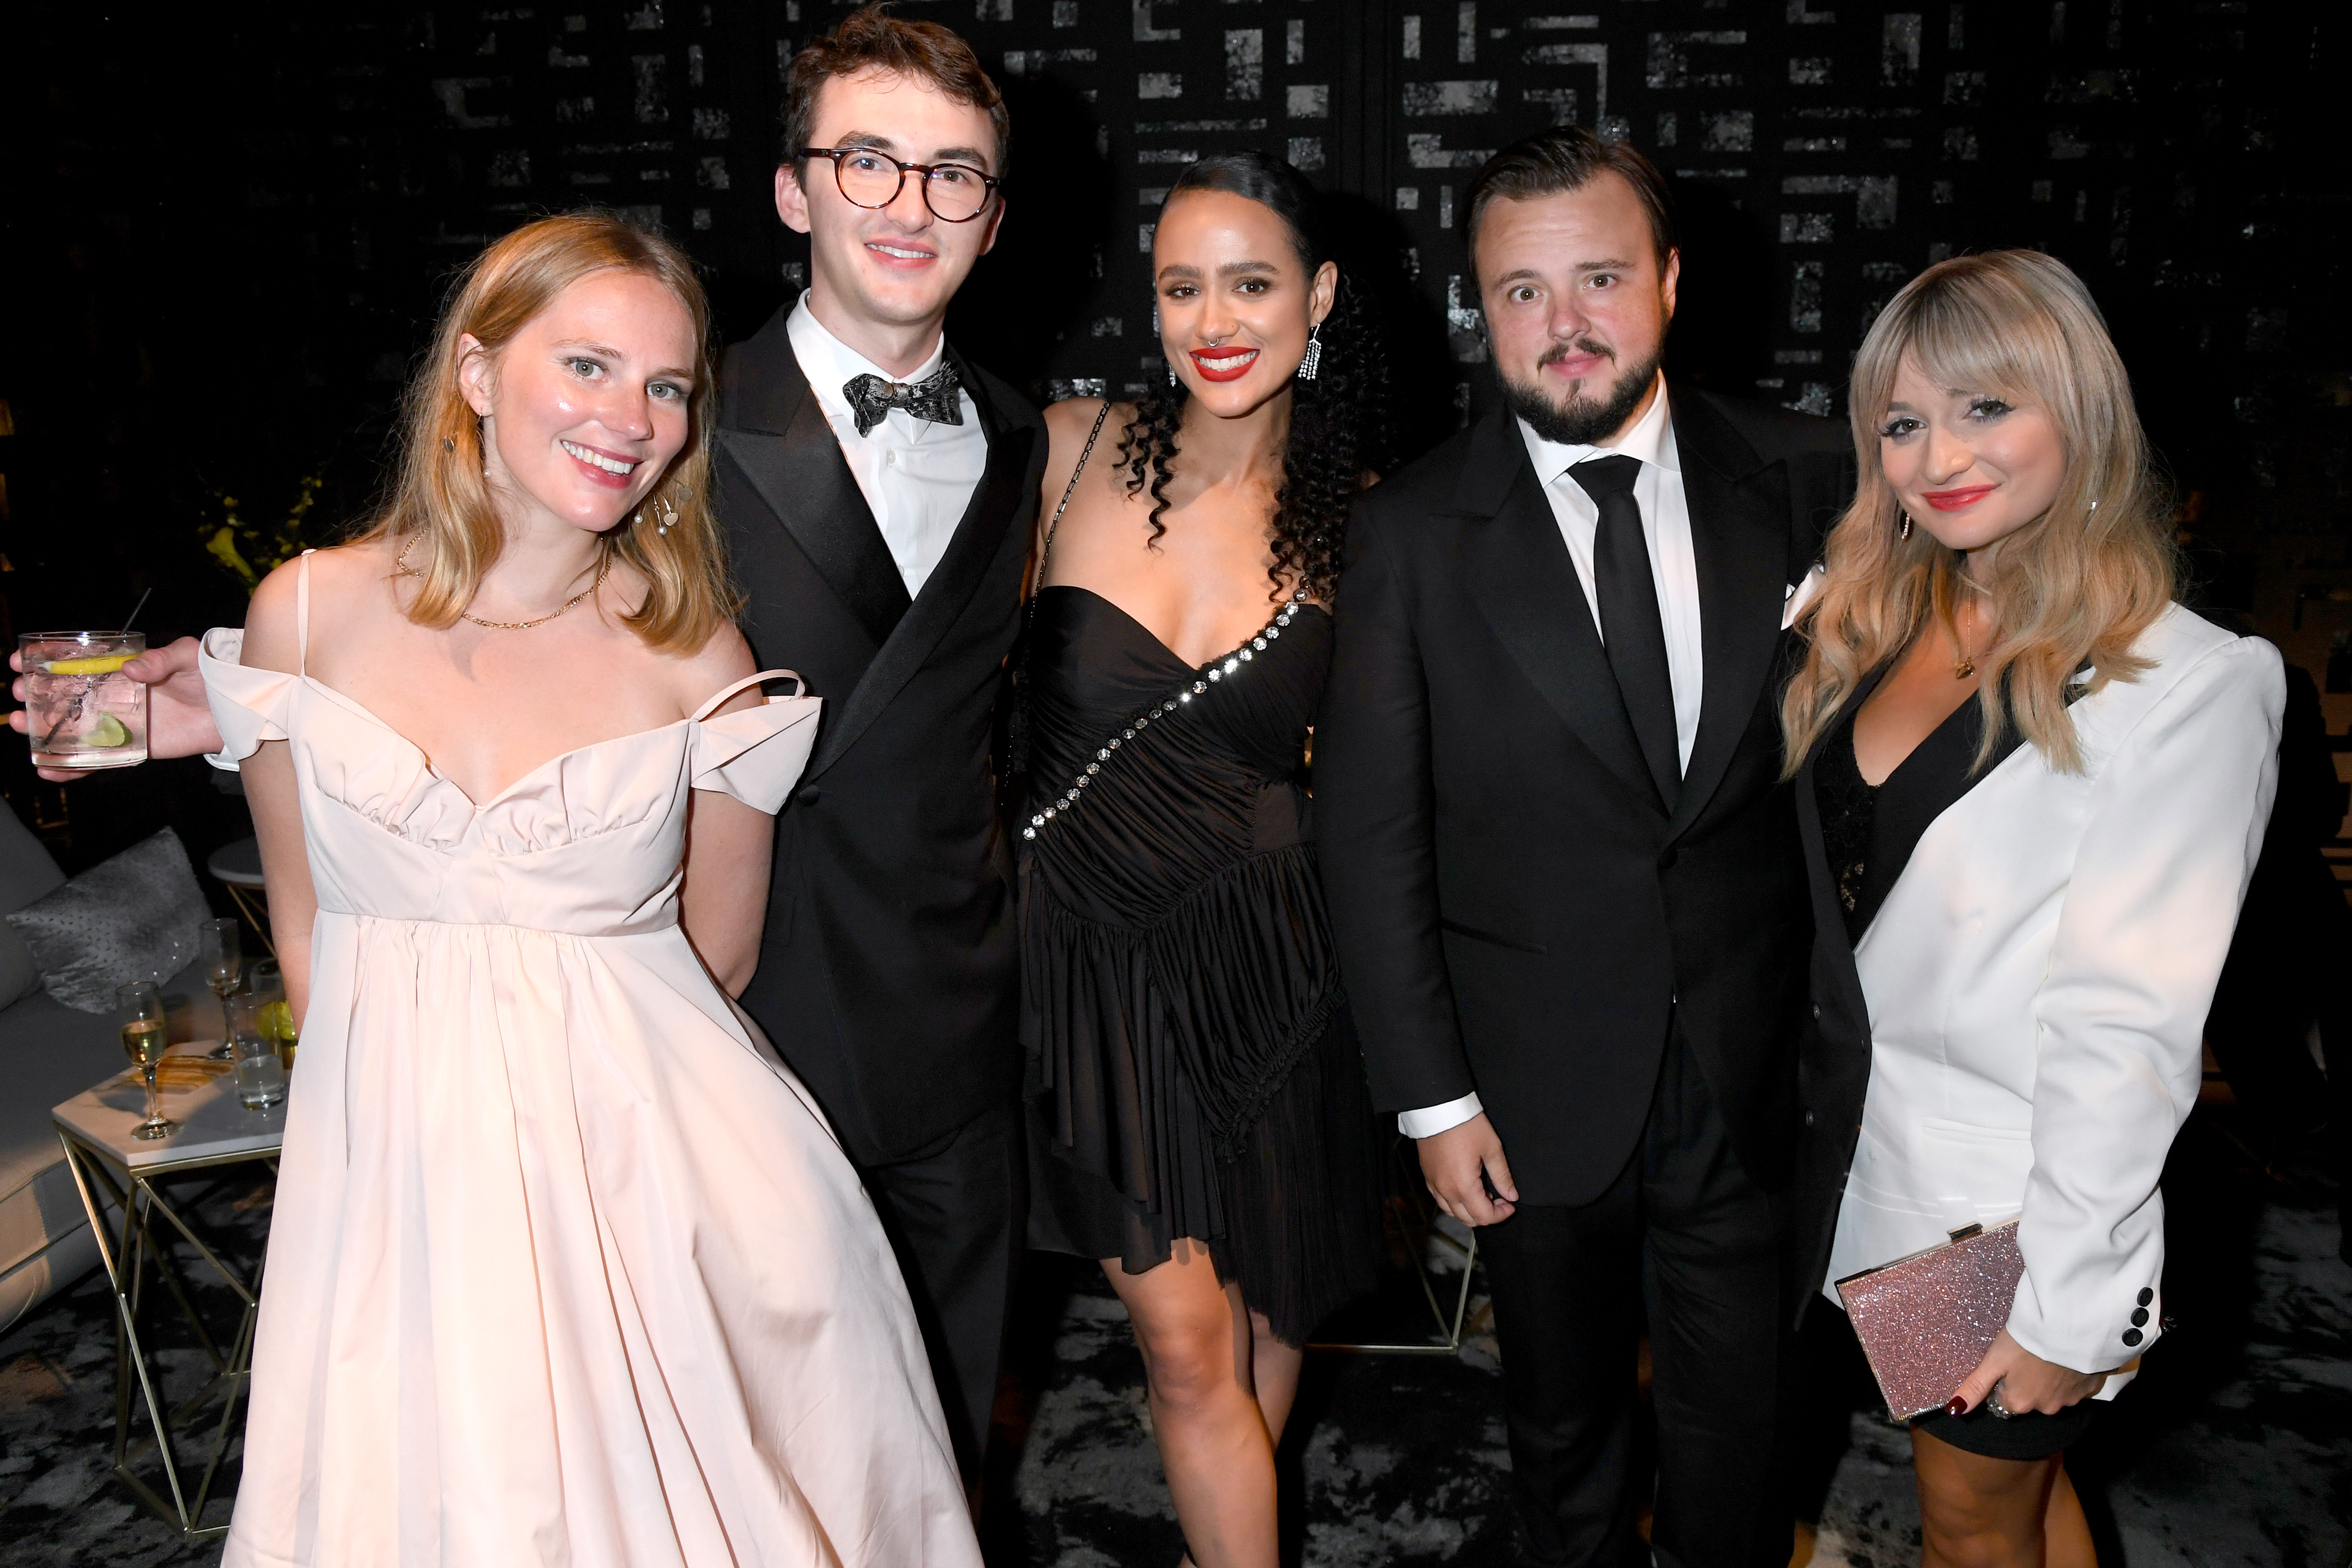 Nathalie Emmanuel, Isaac Hempstead Wright, and John Bradley at an event for The 71st Primetime Emmy Awards (2019)